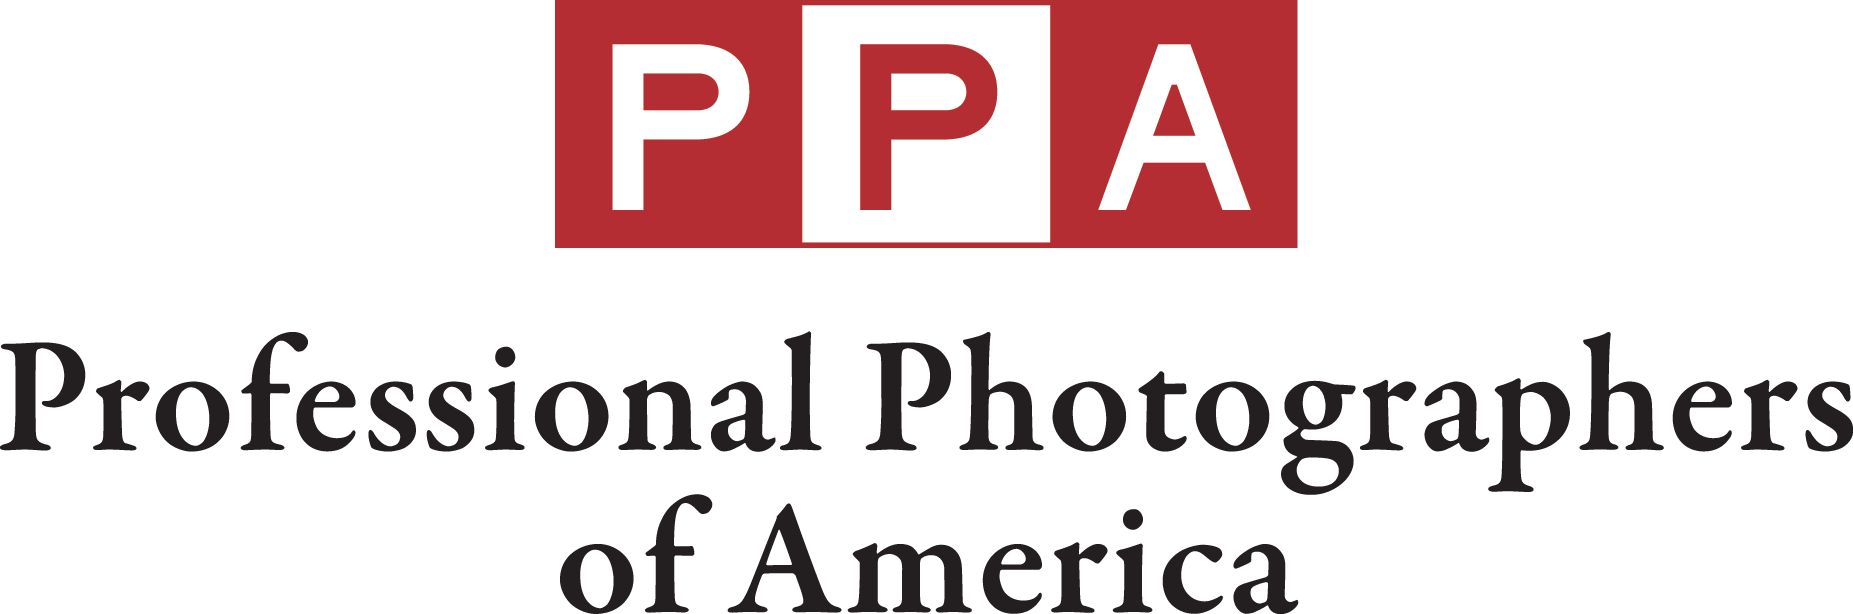 How Much Should Photographers Charge in 2017 Professional photographers of america insurance